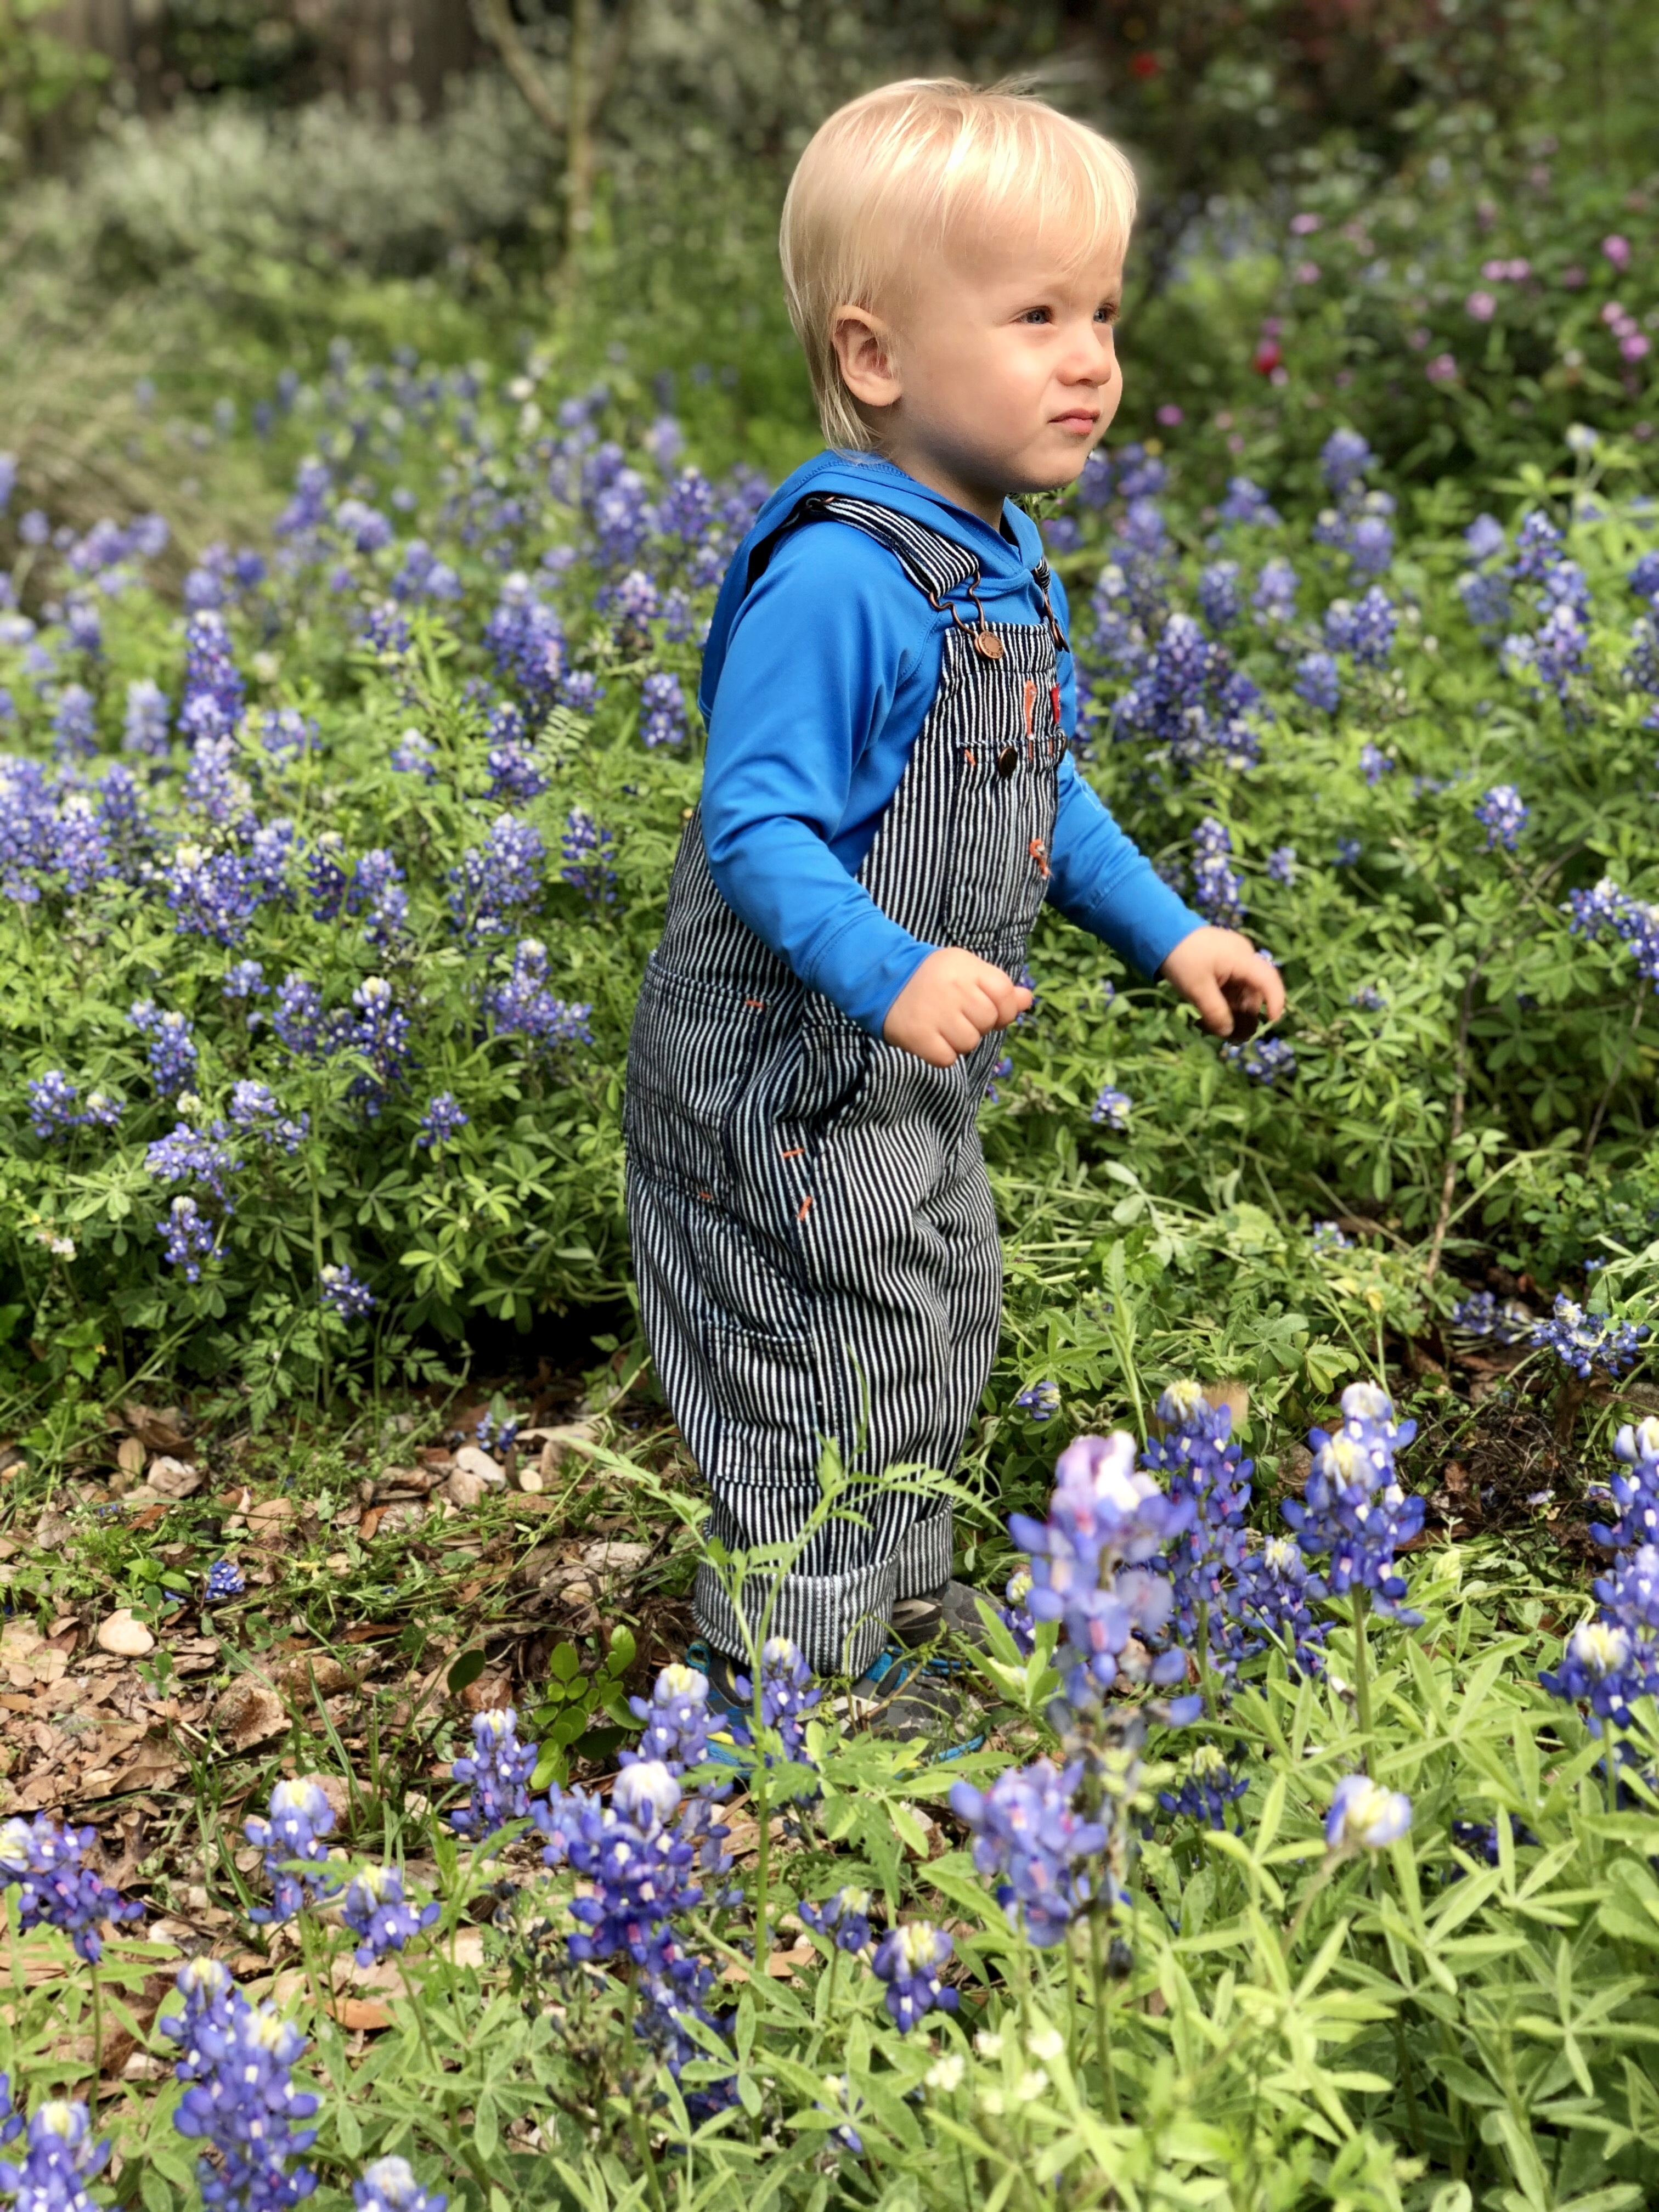 Bluebonnet photo of my son Jack Henry Rodman, age 20 months. Taken in our neighbor's front yard this morning. (Courtesy Amy Rodman)